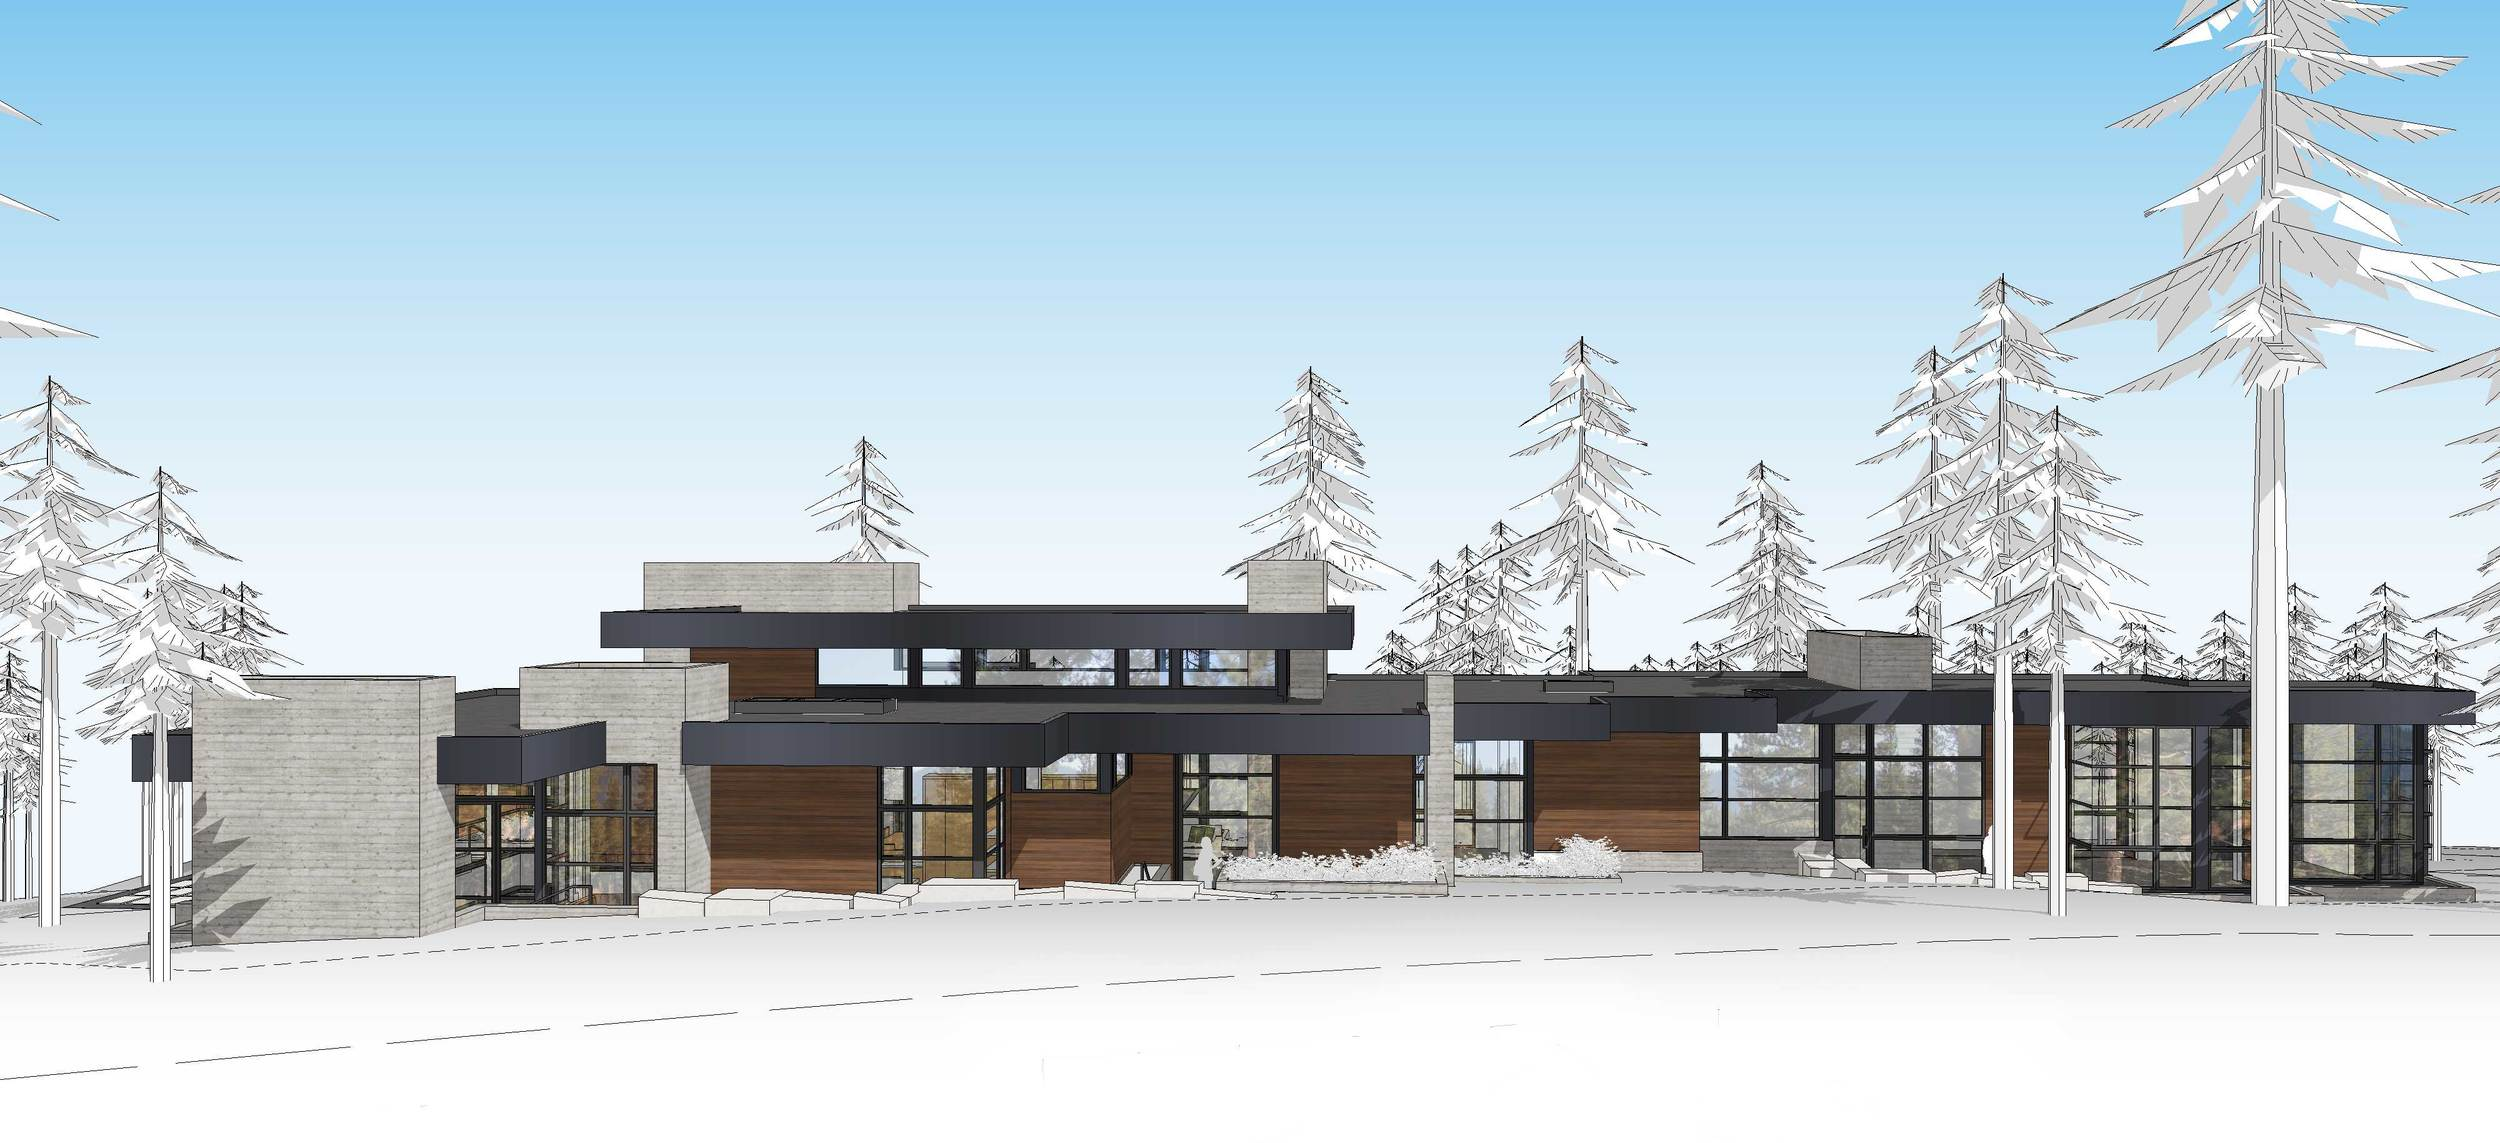 Contractor: Crestwood Construction   Square Footage: 8,397 sf bedrooms: 6 bathrooms: 6.5